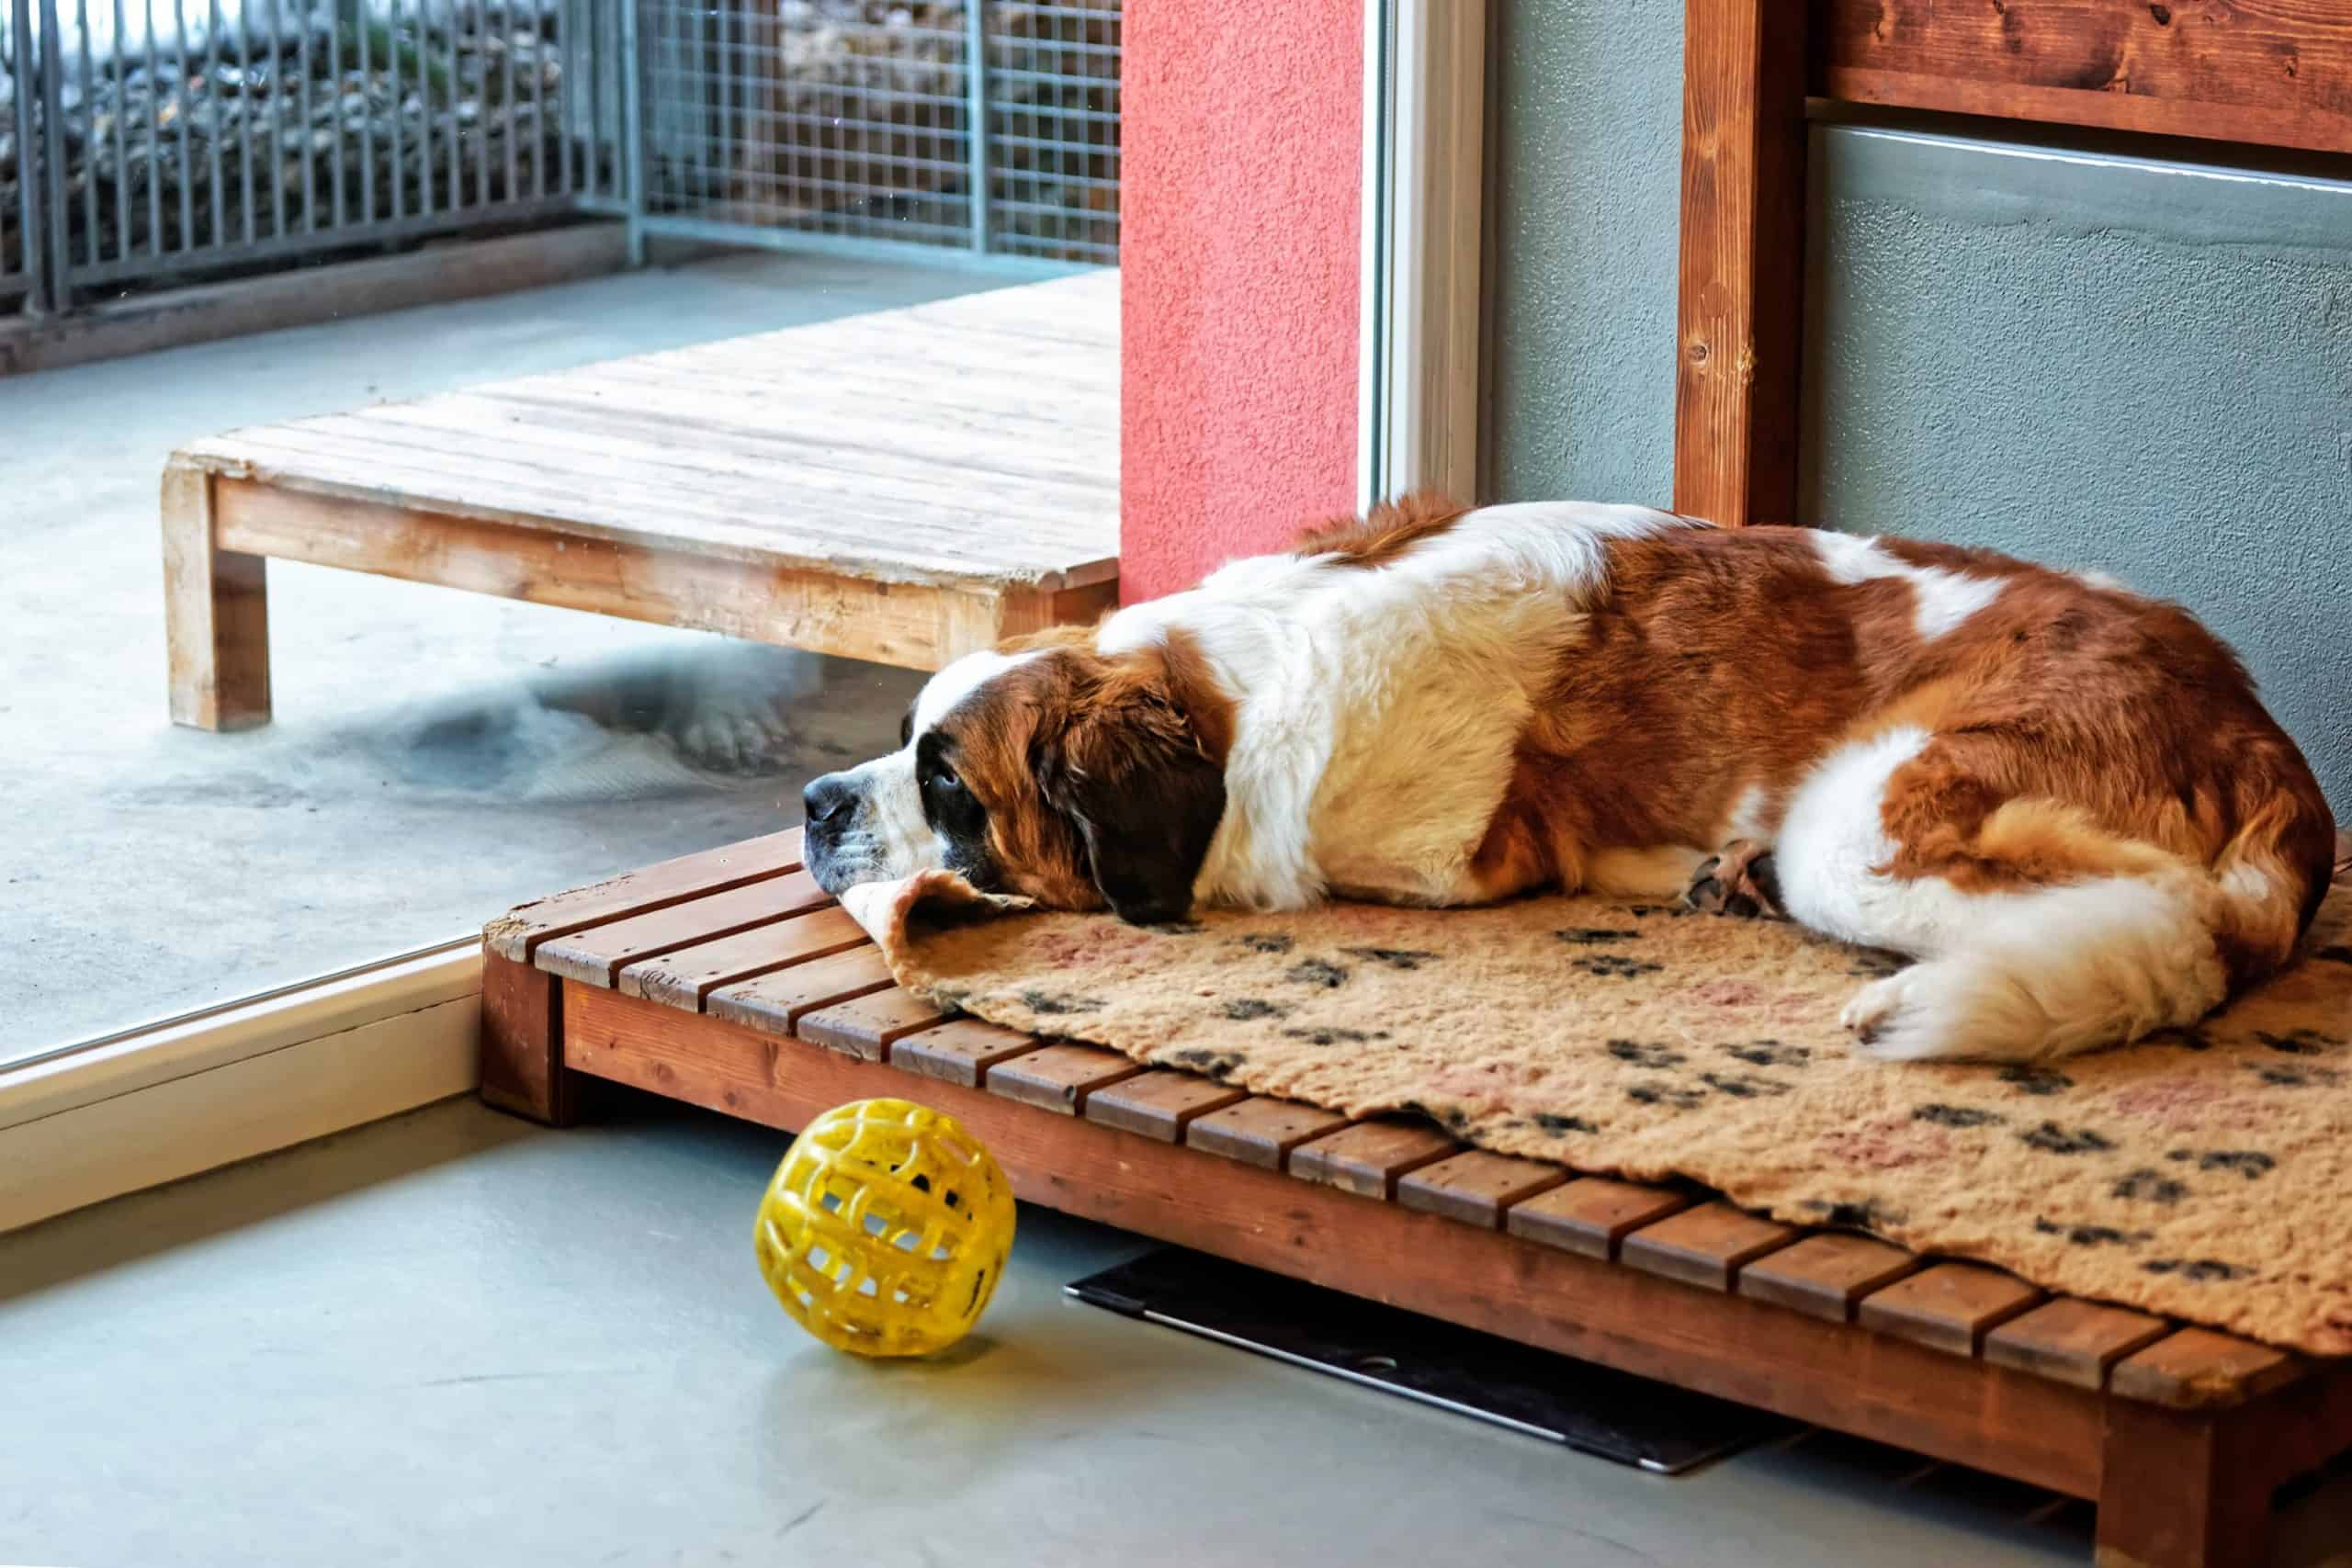 St. Bernard lounges on a special dog bed at a dog kennel. Dog kennels are beneficial for the physical, mental, and emotional health of your dog.